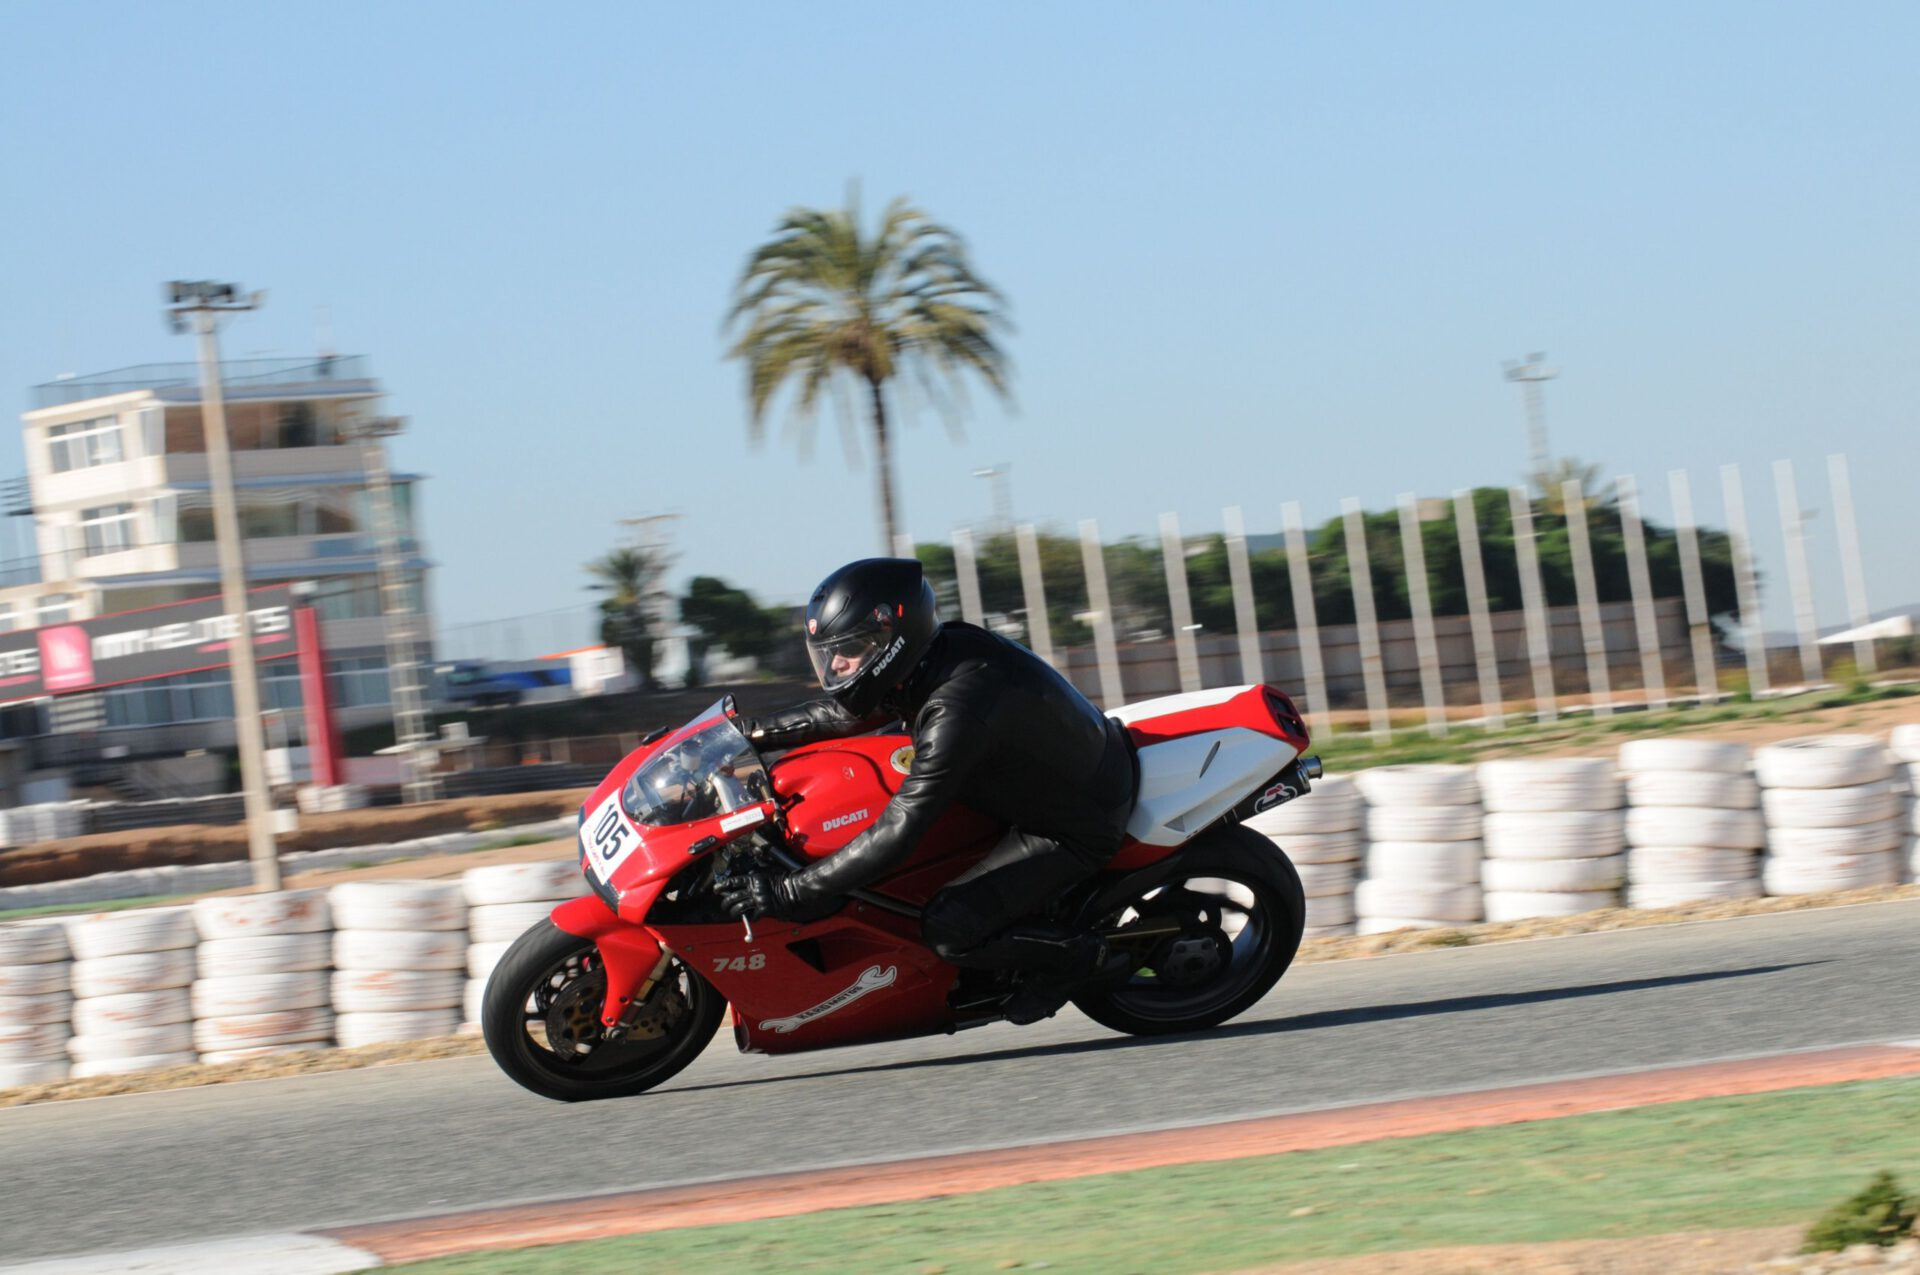 Circuito Cartagena on Ducati 748, January 2019